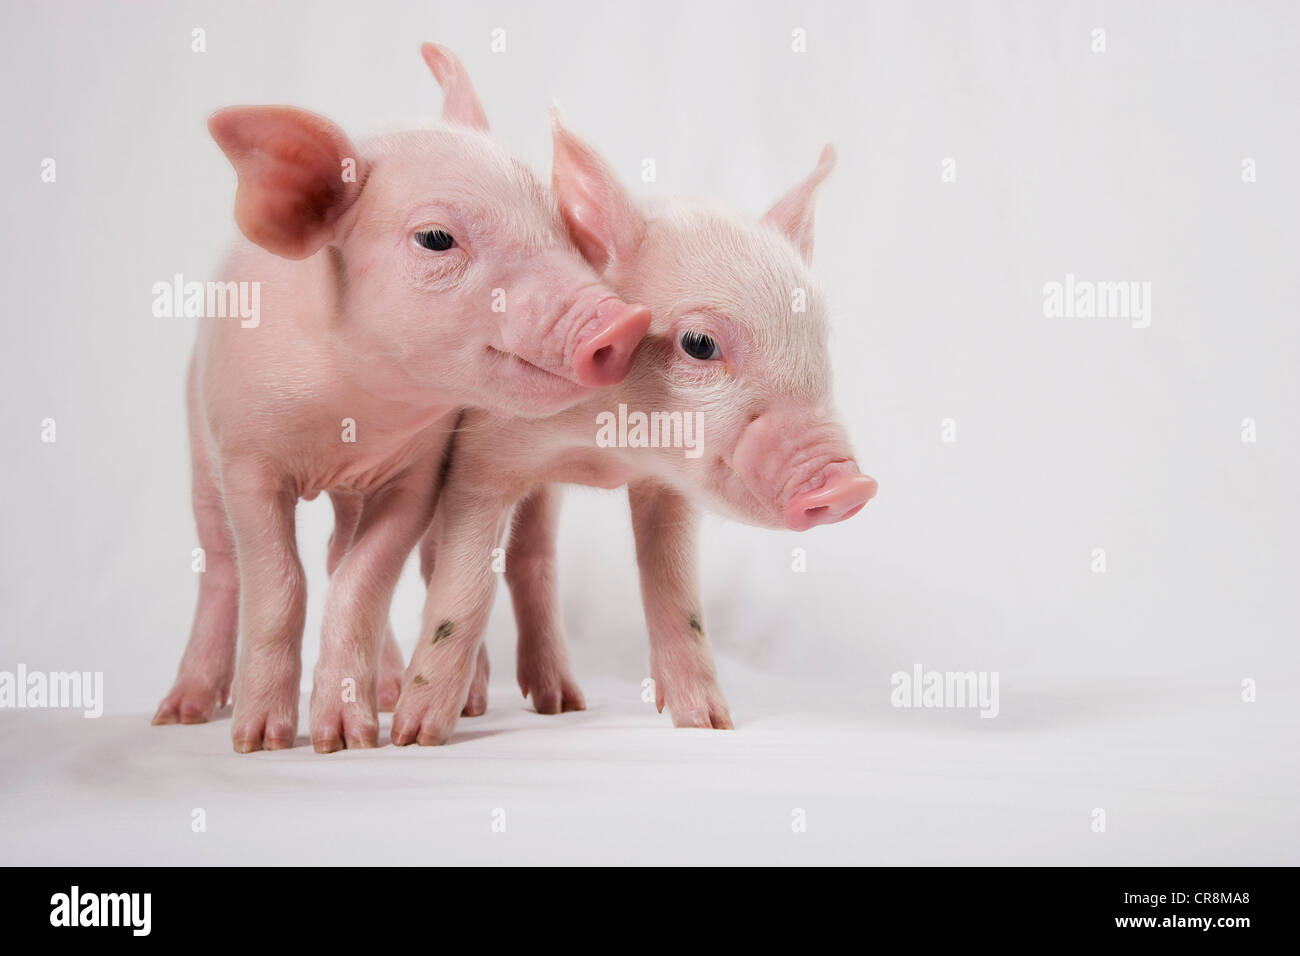 Two piglets - Stock Image